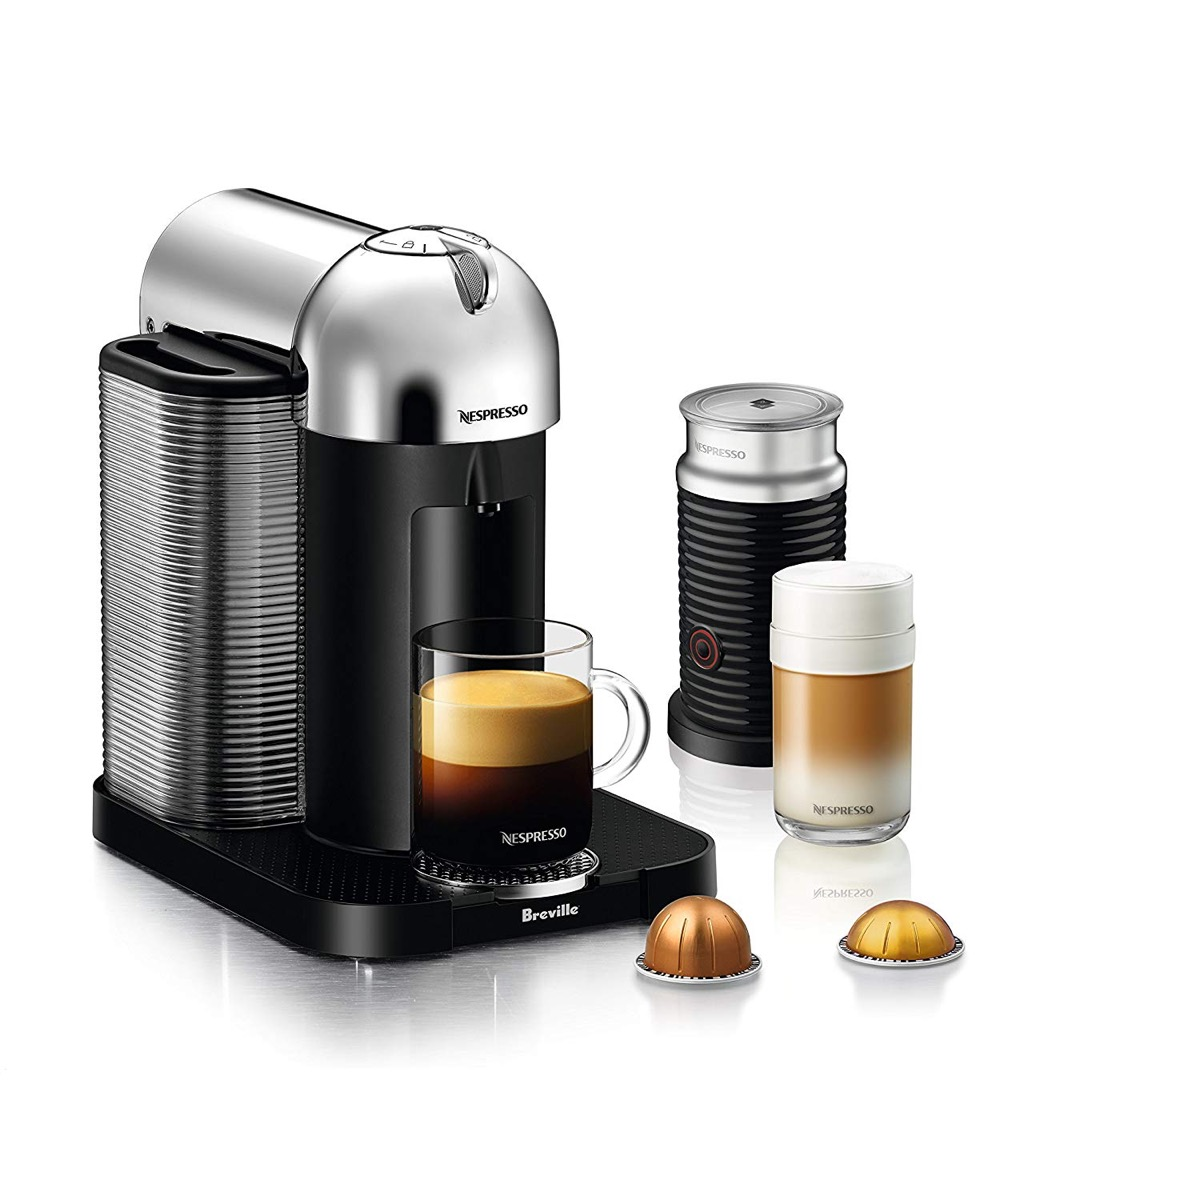 nespresso machine appliances with cult followings